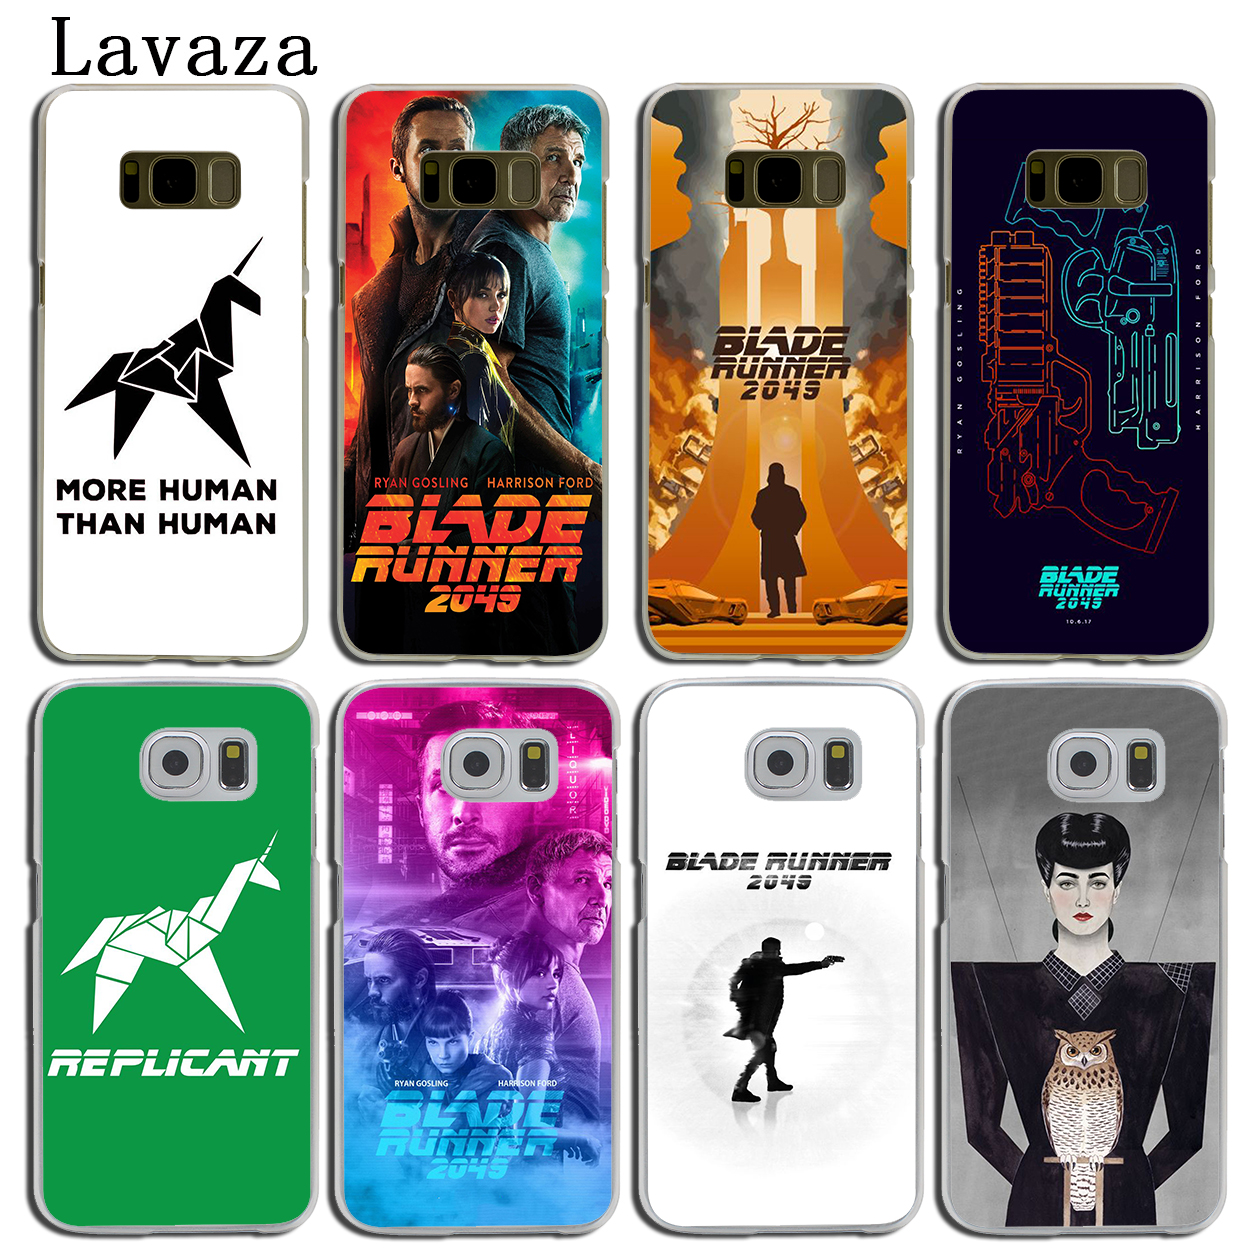 Lavaza Blade Runner 2049 film Hard Phone Shell Case for Samsung Galaxy S8 S9 Plus S3 S4 S5 & Mini S6 S7 Edge Plus Cover ...